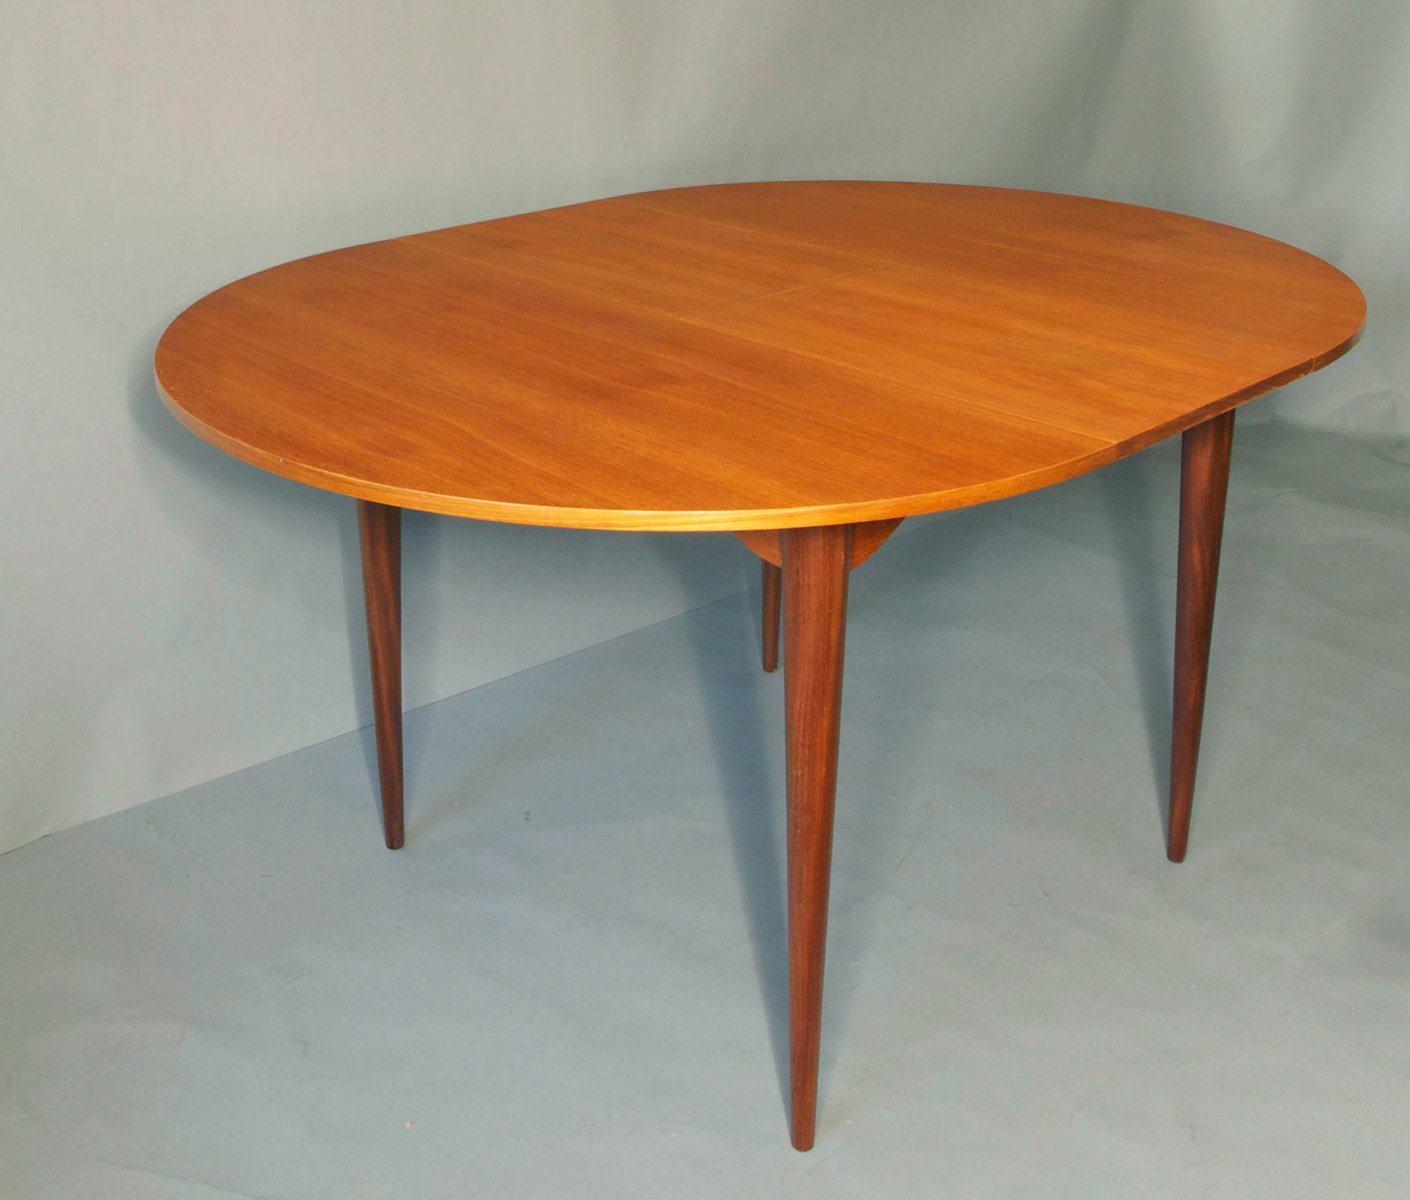 Mid-Century Circular Teak Extendable Dining Table, 1960s for sale at ...